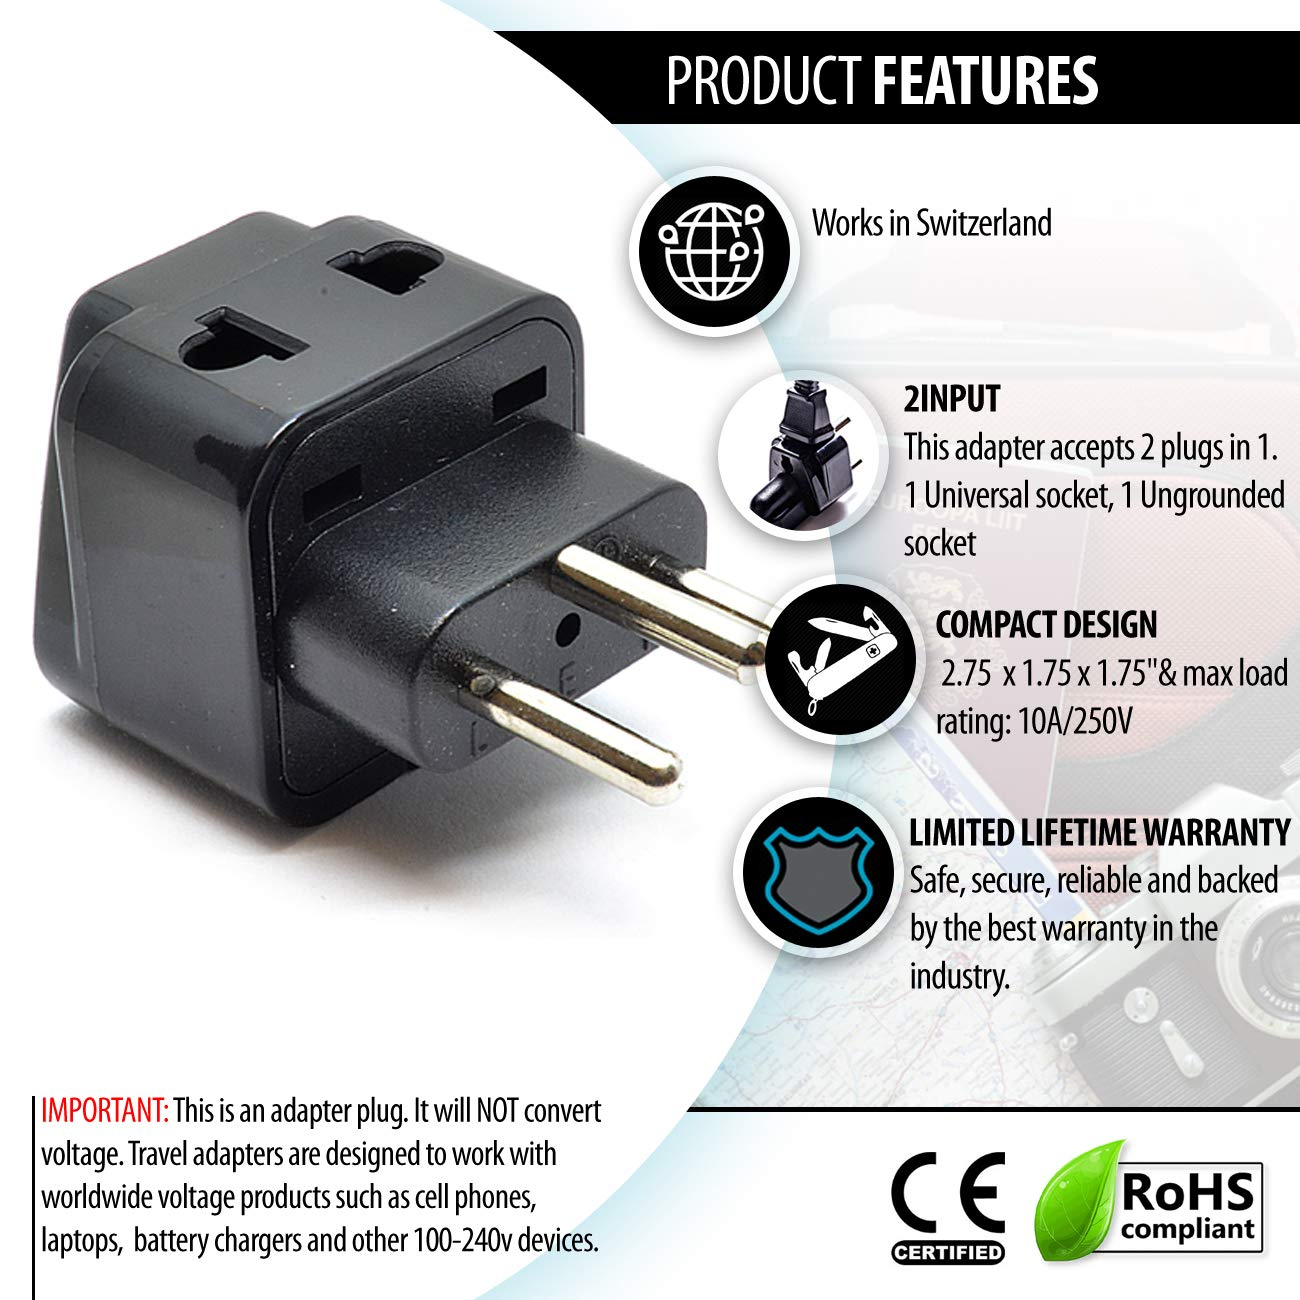 Switzerland Power Plug Adapter by OREI, 2 in 1 USA Grounded Connection -  Universal Socket - Type J - 4 Pack - Perfect for Cell Phones, Laptops,